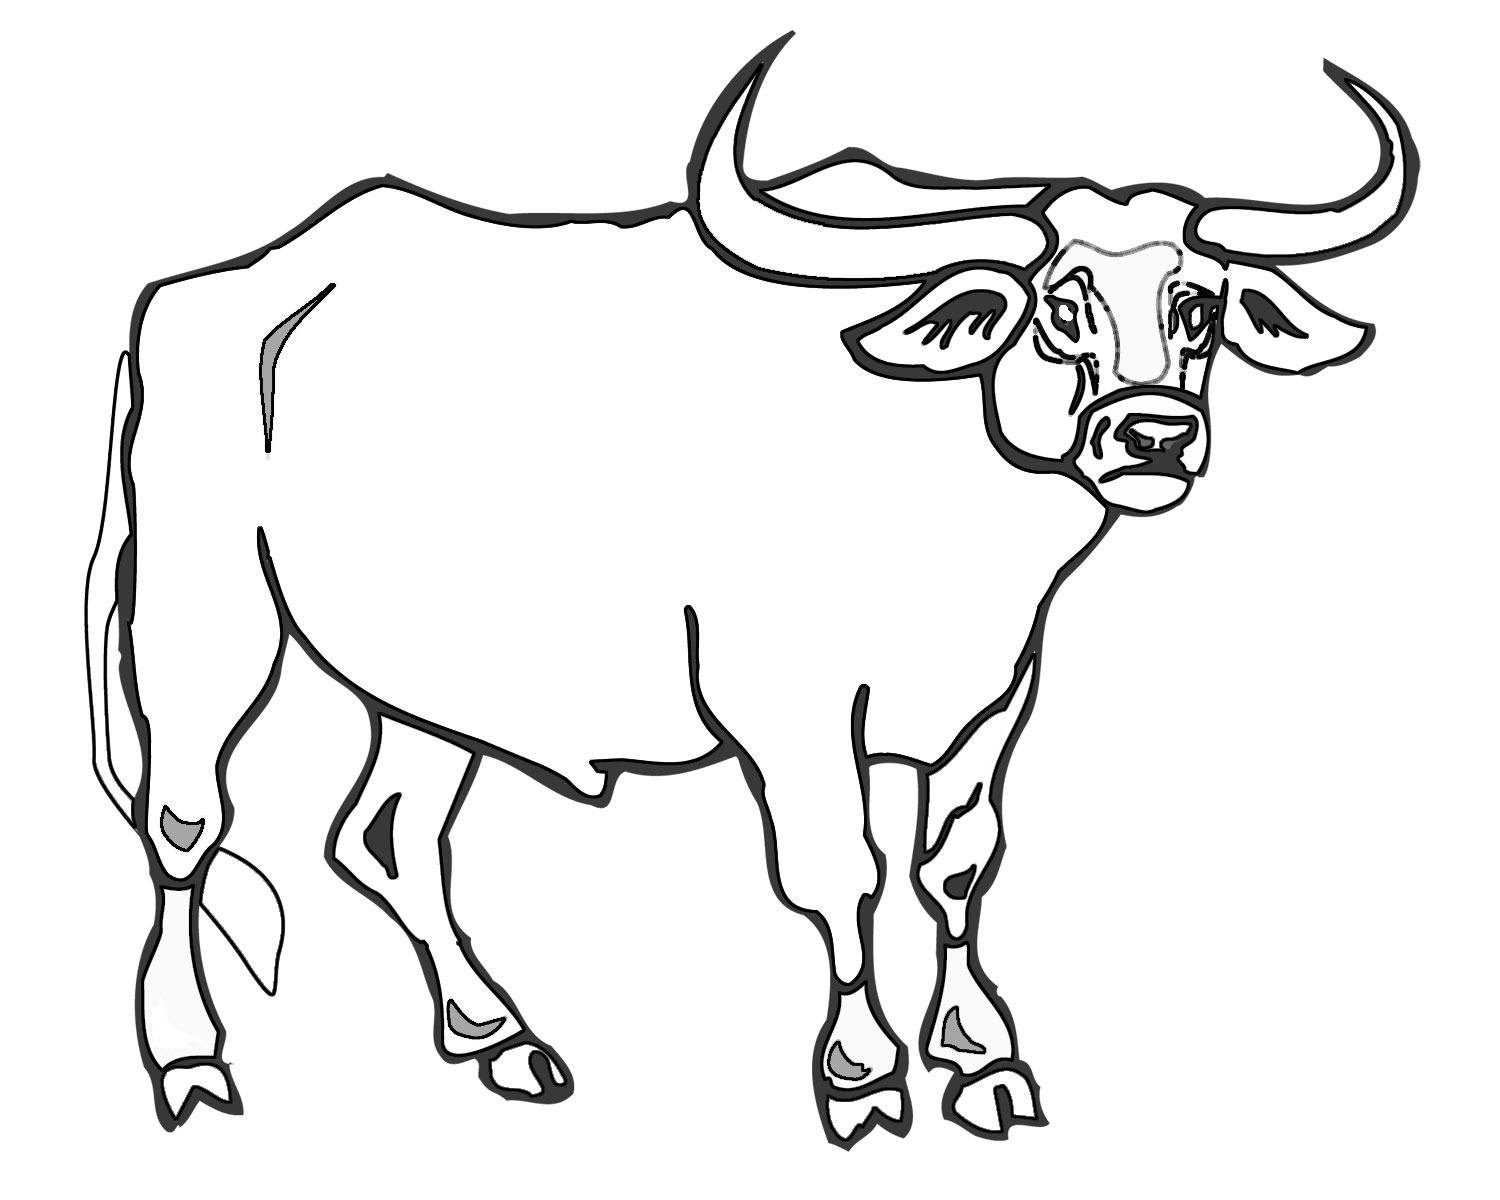 1500x1200 Bull Coloring Page, Bull Printable Coloring Pages